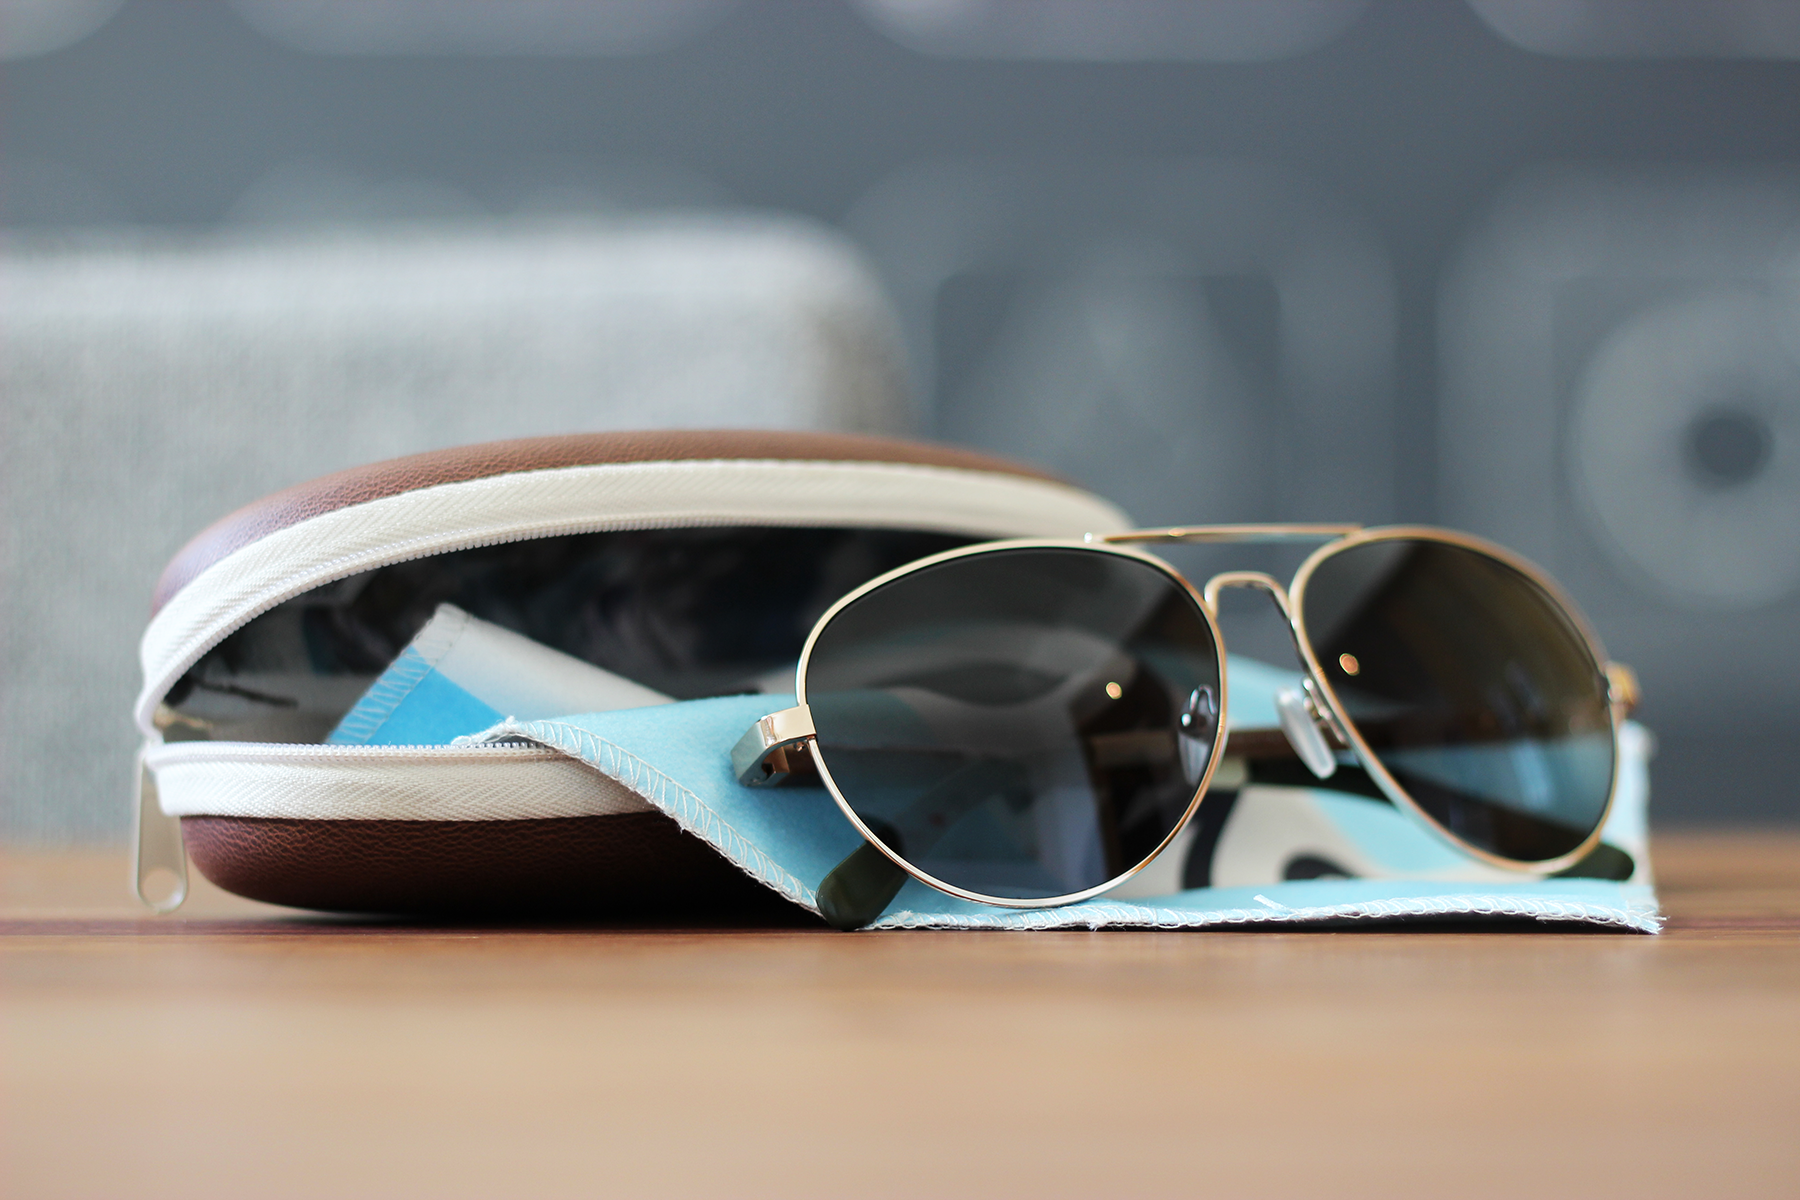 Toms Sunglasses Packaging